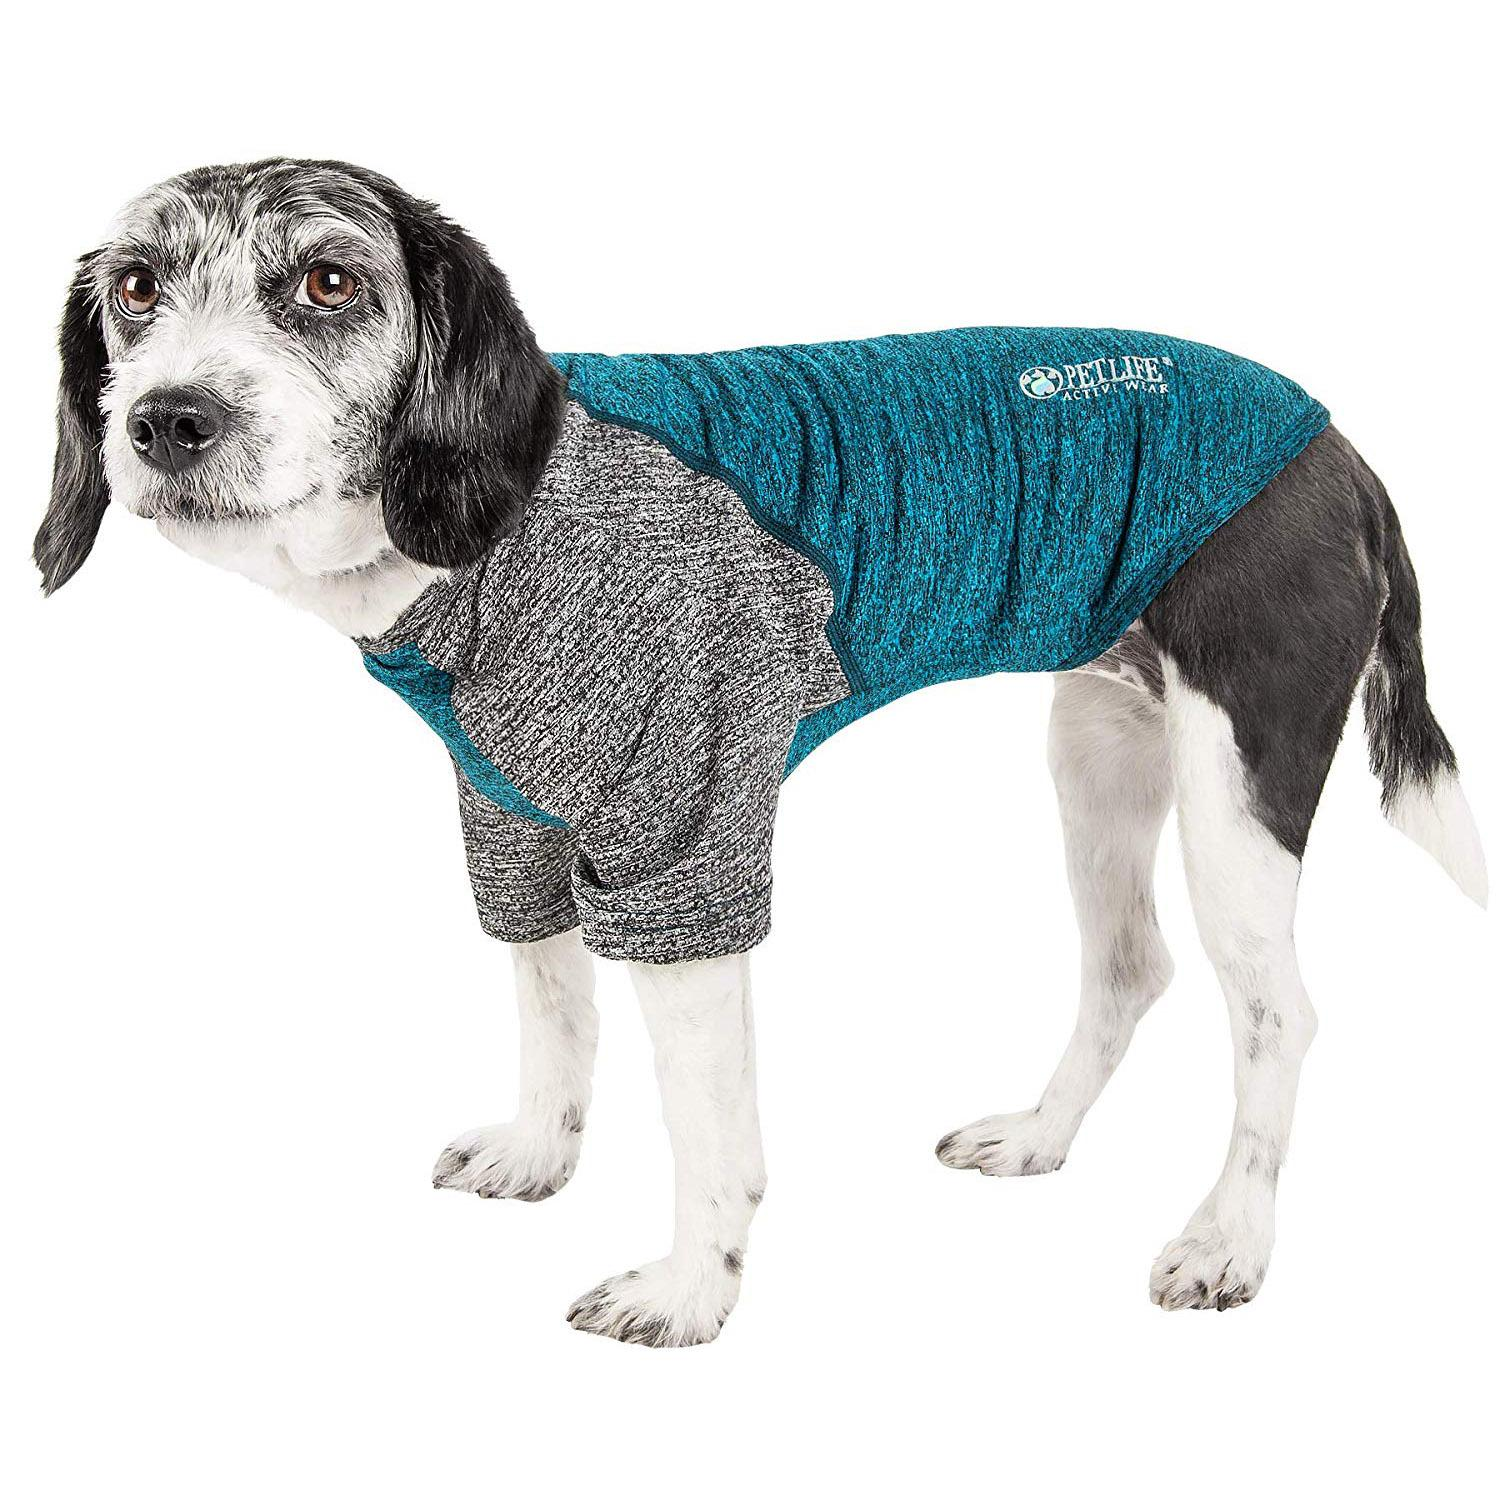 Pet Life ACTIVE 'Hybreed' Two-Toned Performance Dog T-Shirt - Teal and Gray